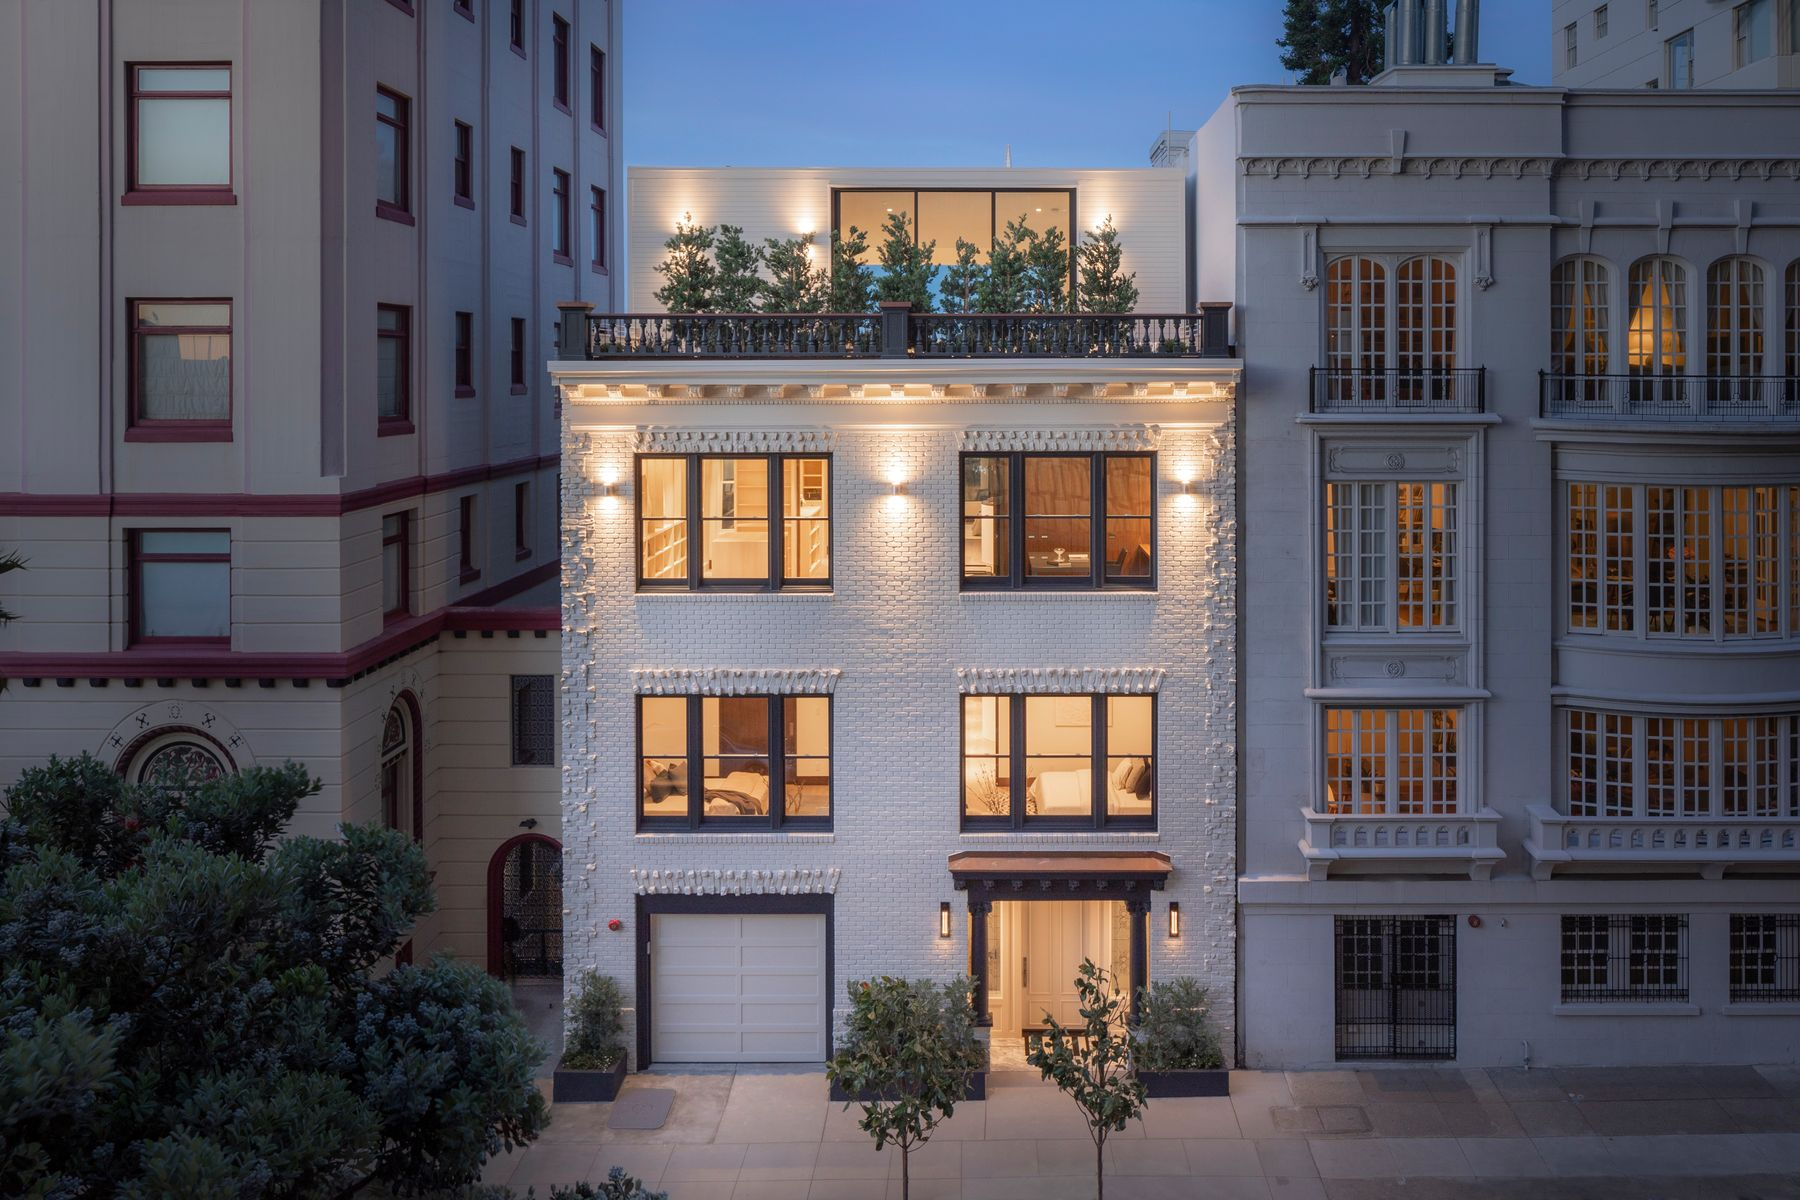 Vivienda unifamiliar En venta en 1350 Jones St, San Francisco, California ,94109  , EE.UU.